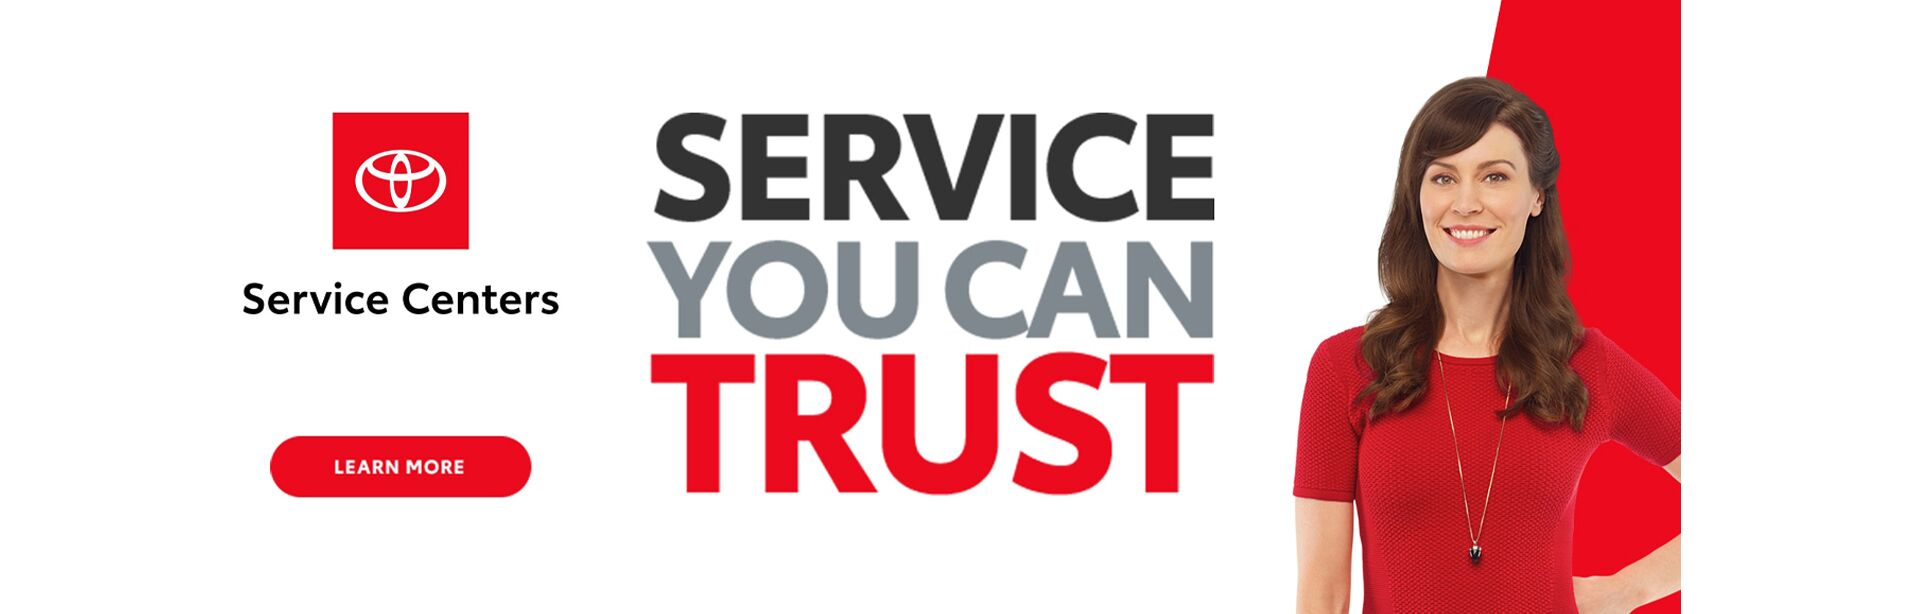 Service You Can Trust Slider